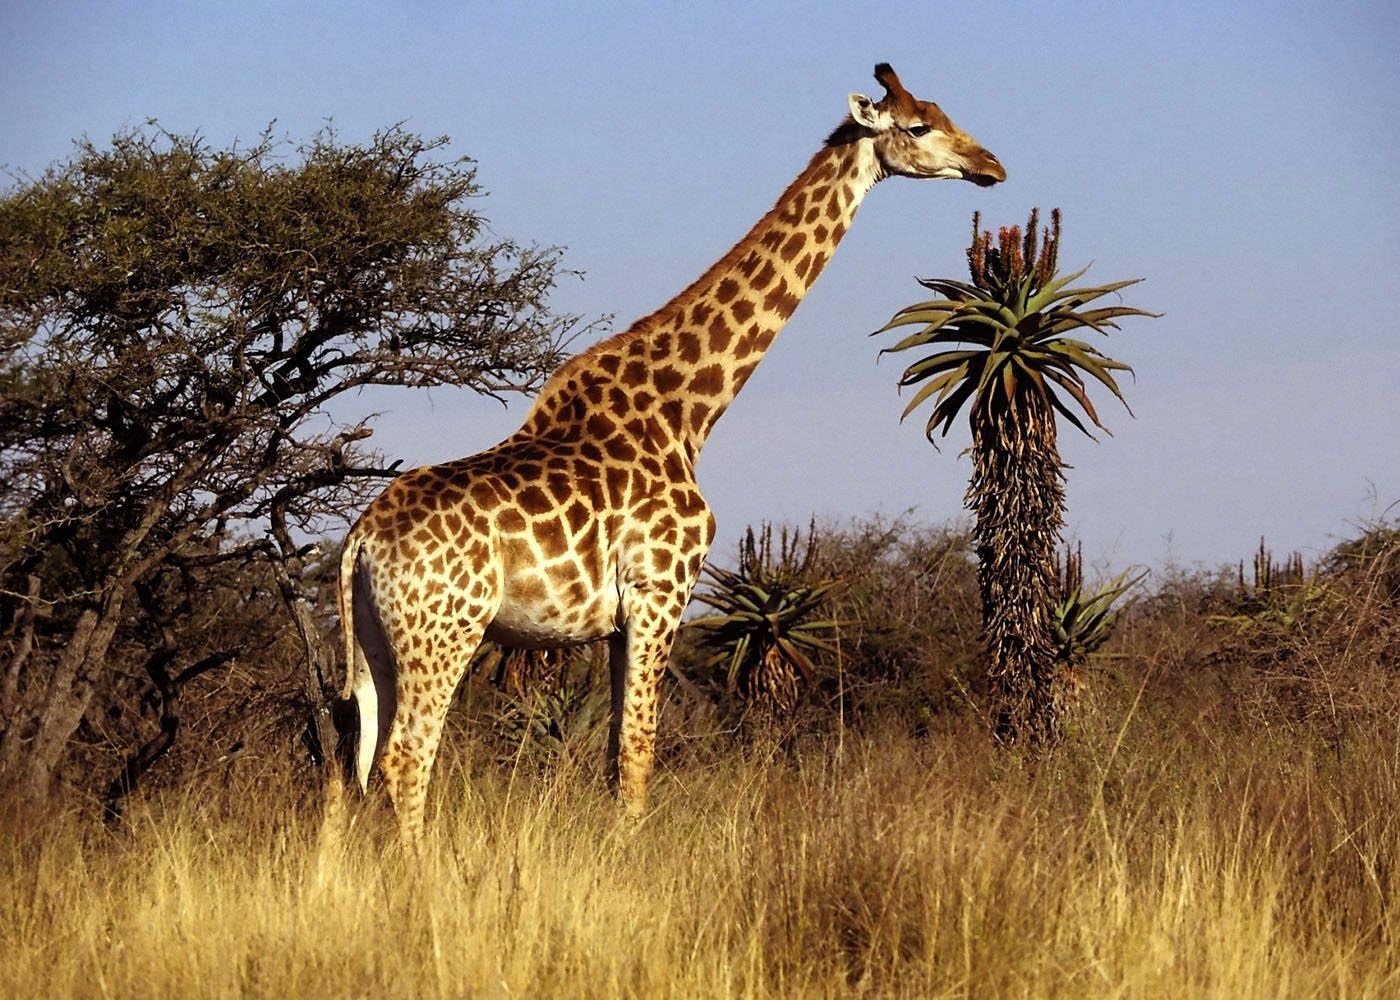 Giraffe HD Wallpapers Free Download